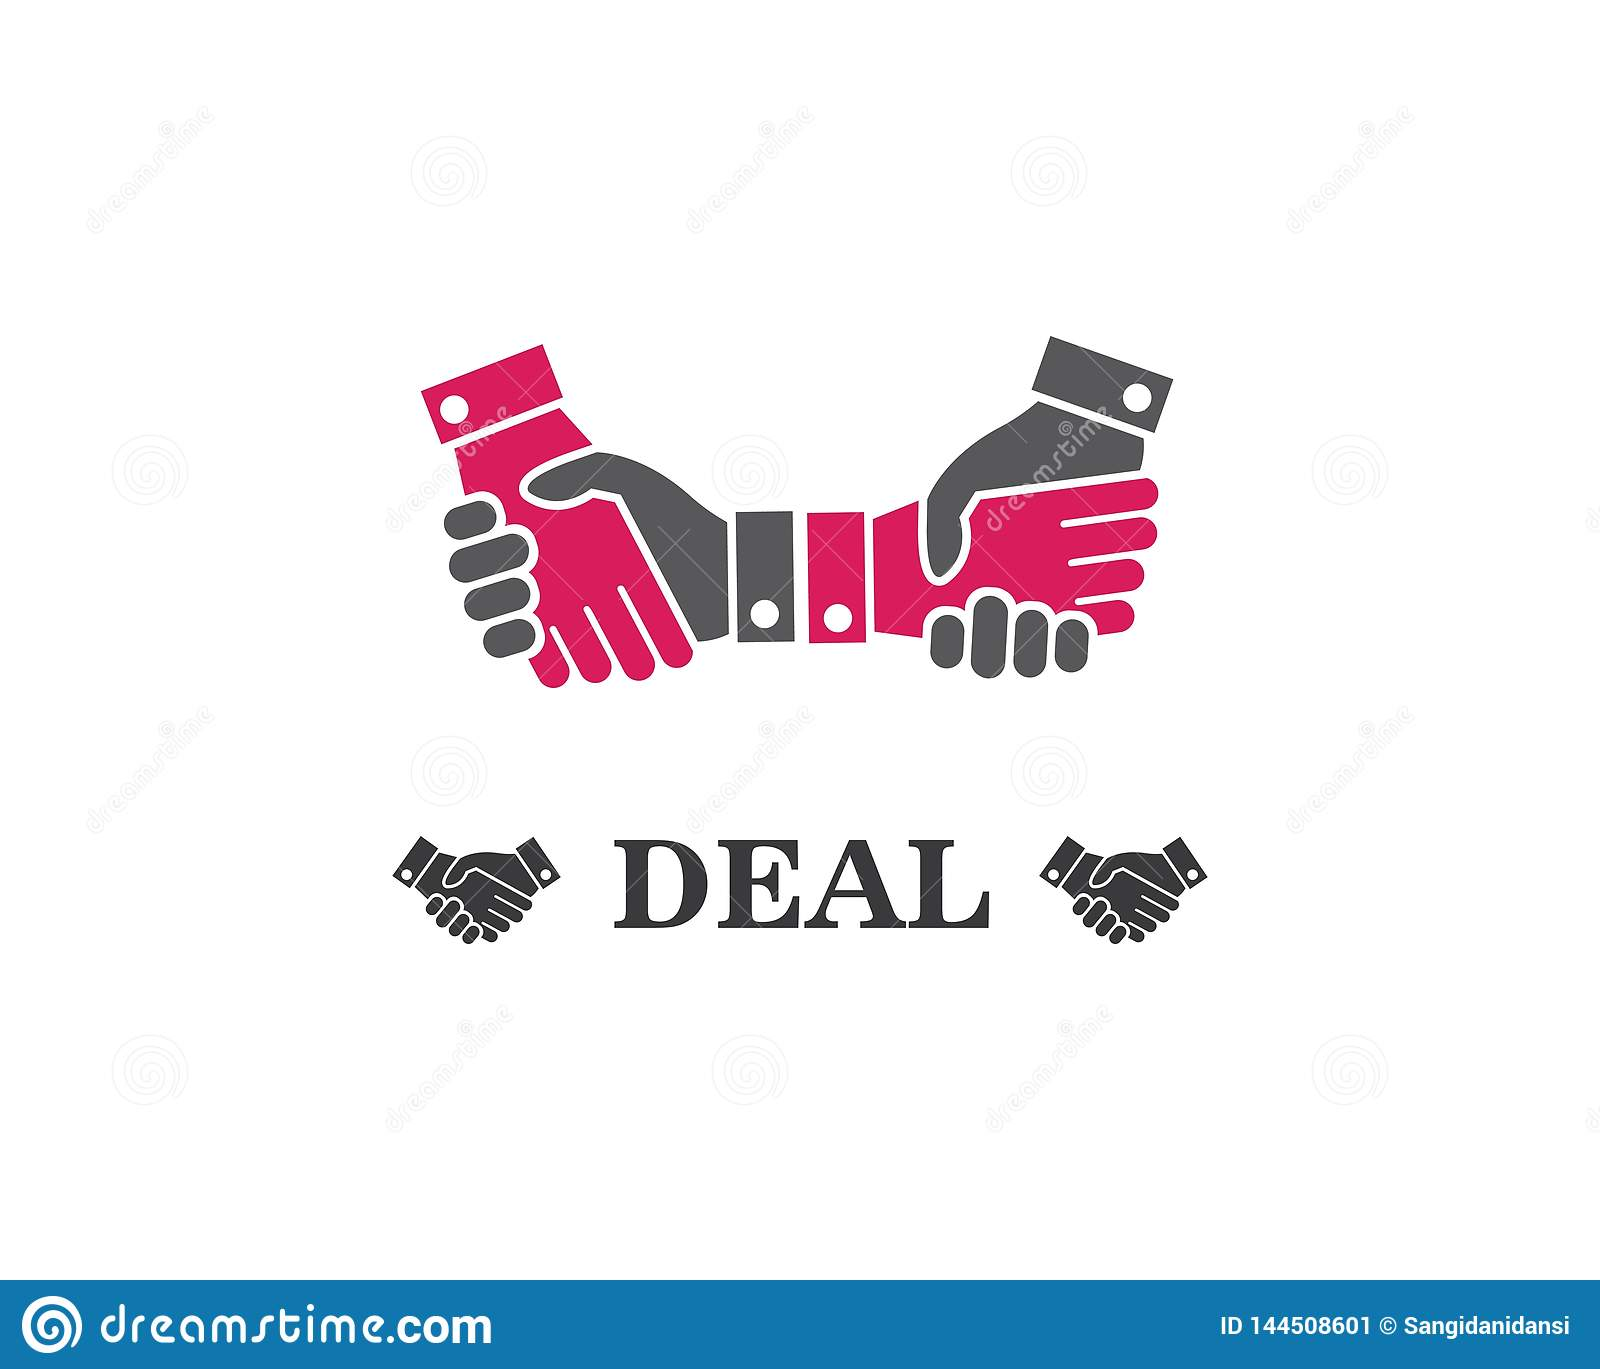 handshake logo vector icon of business agreement